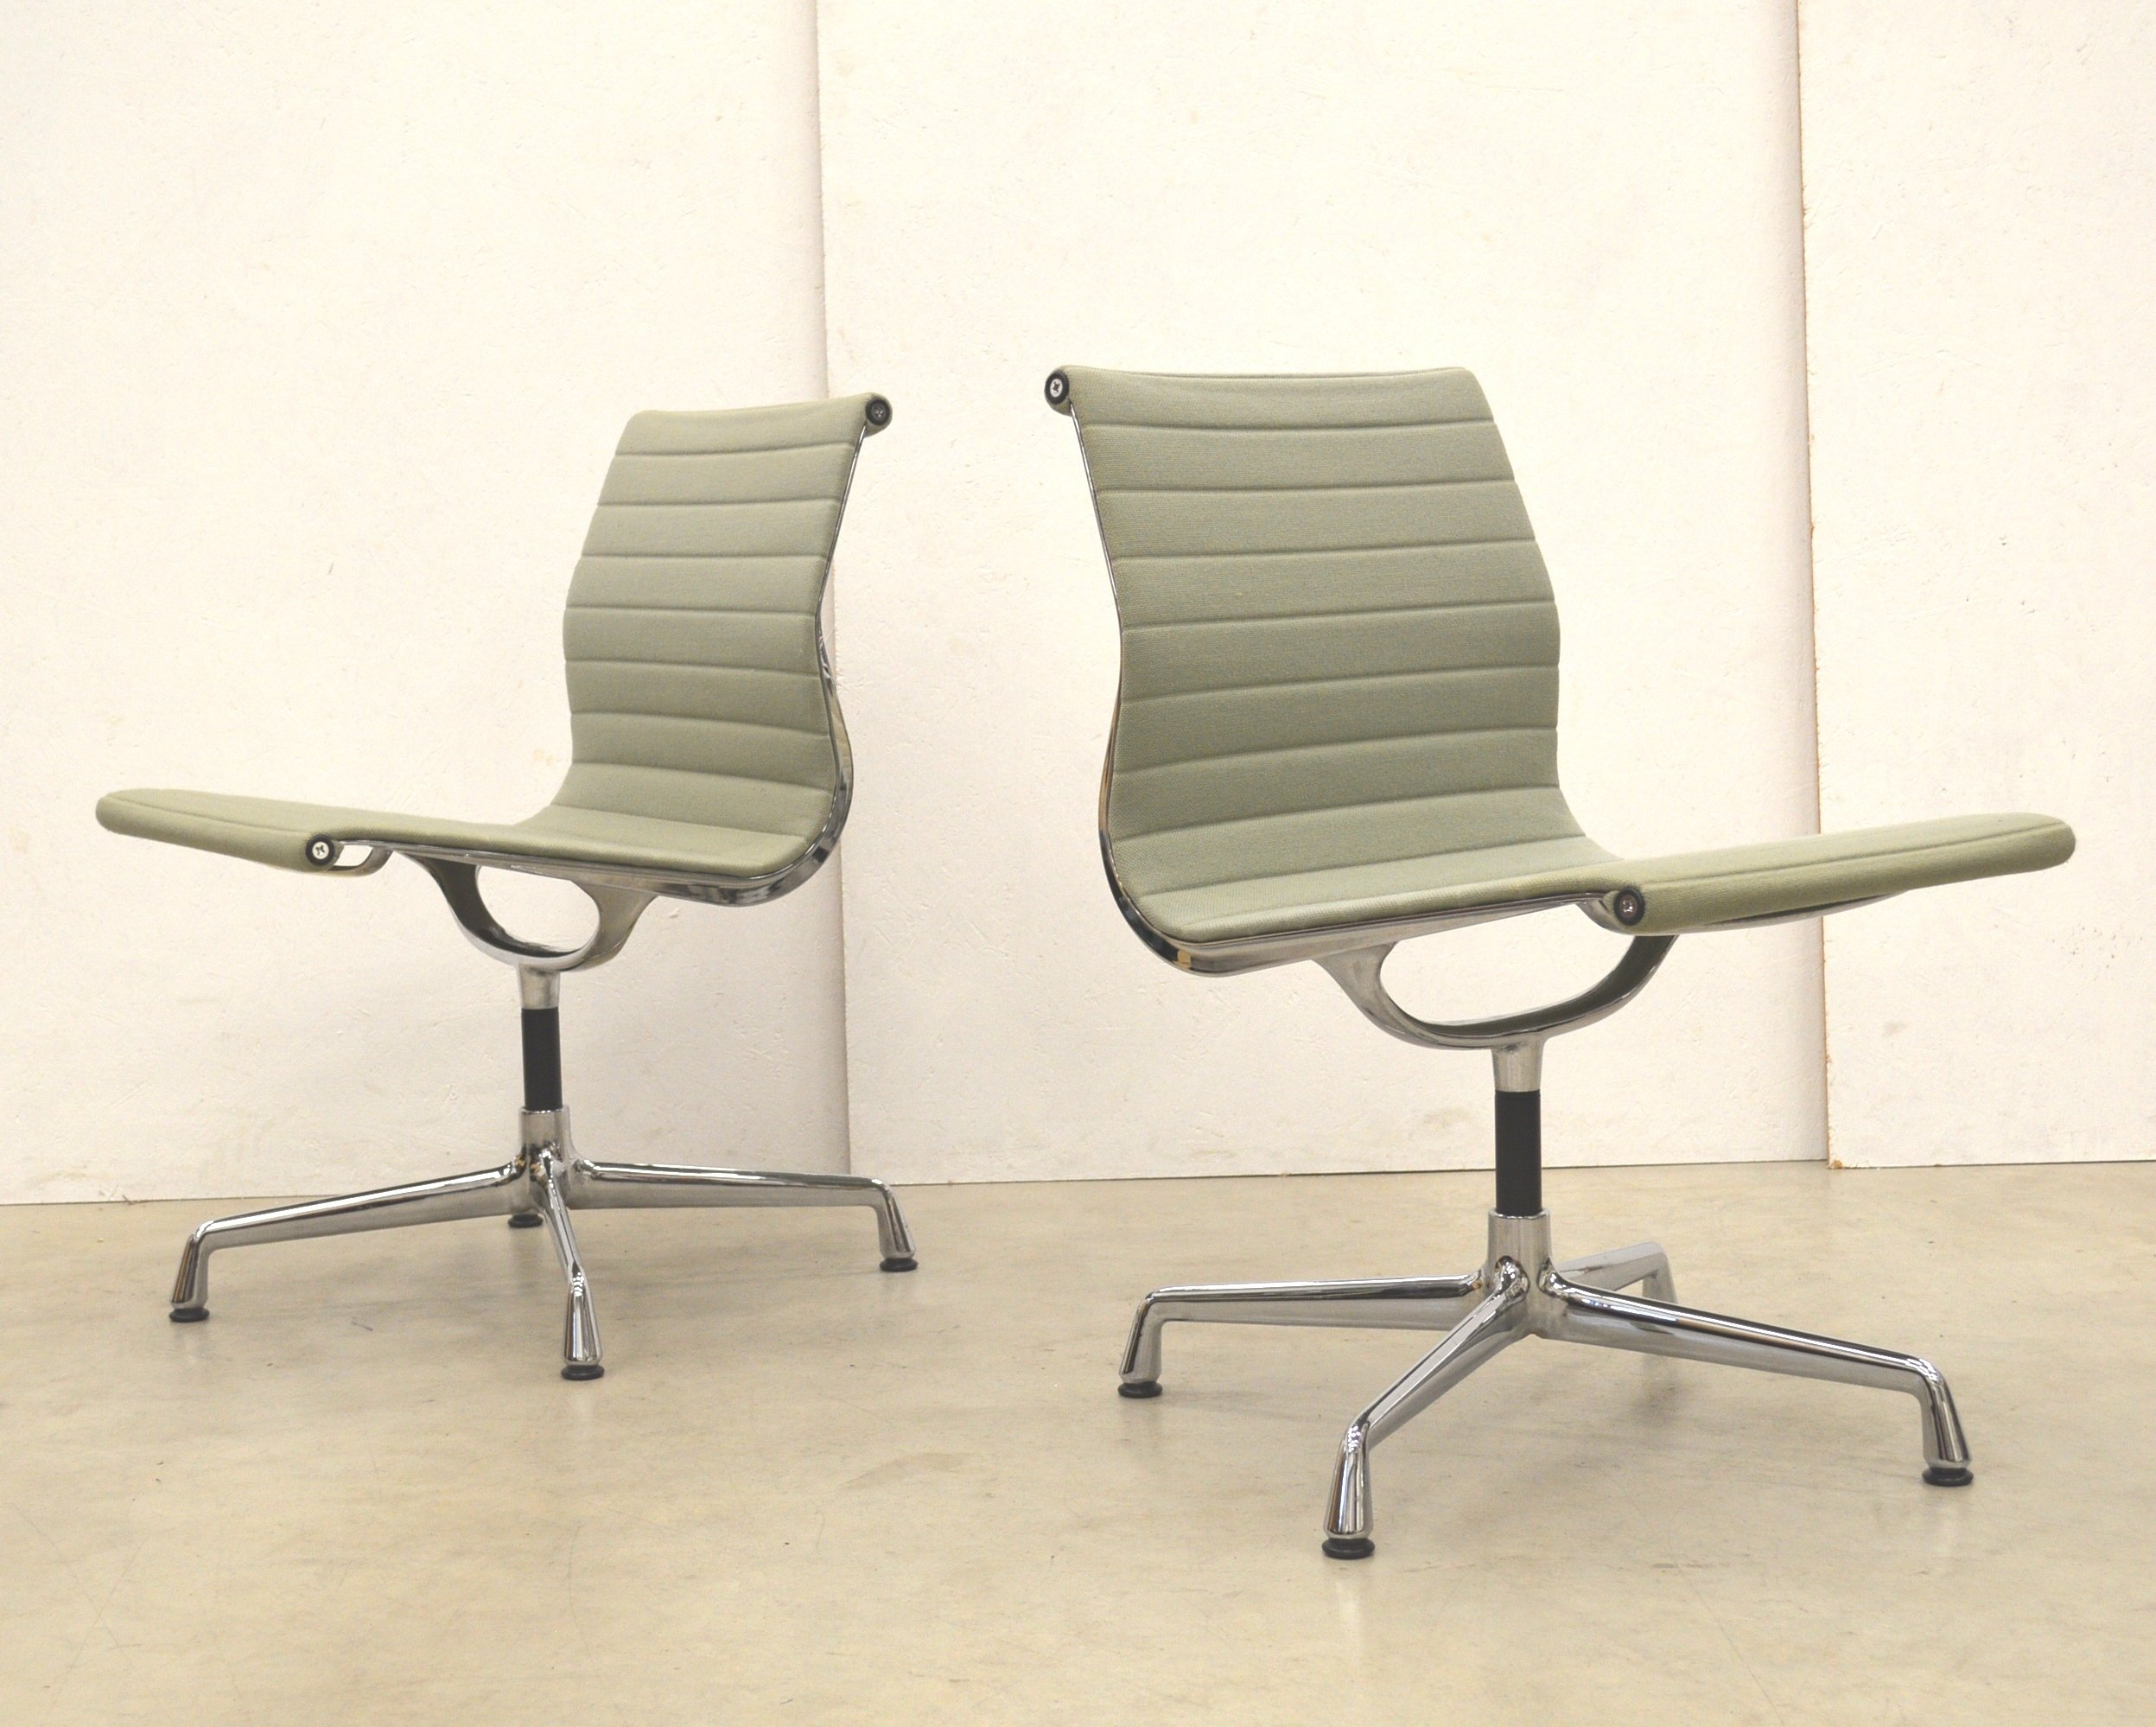 ea106 office chair by charles ray eames for vitra 1980s. Black Bedroom Furniture Sets. Home Design Ideas